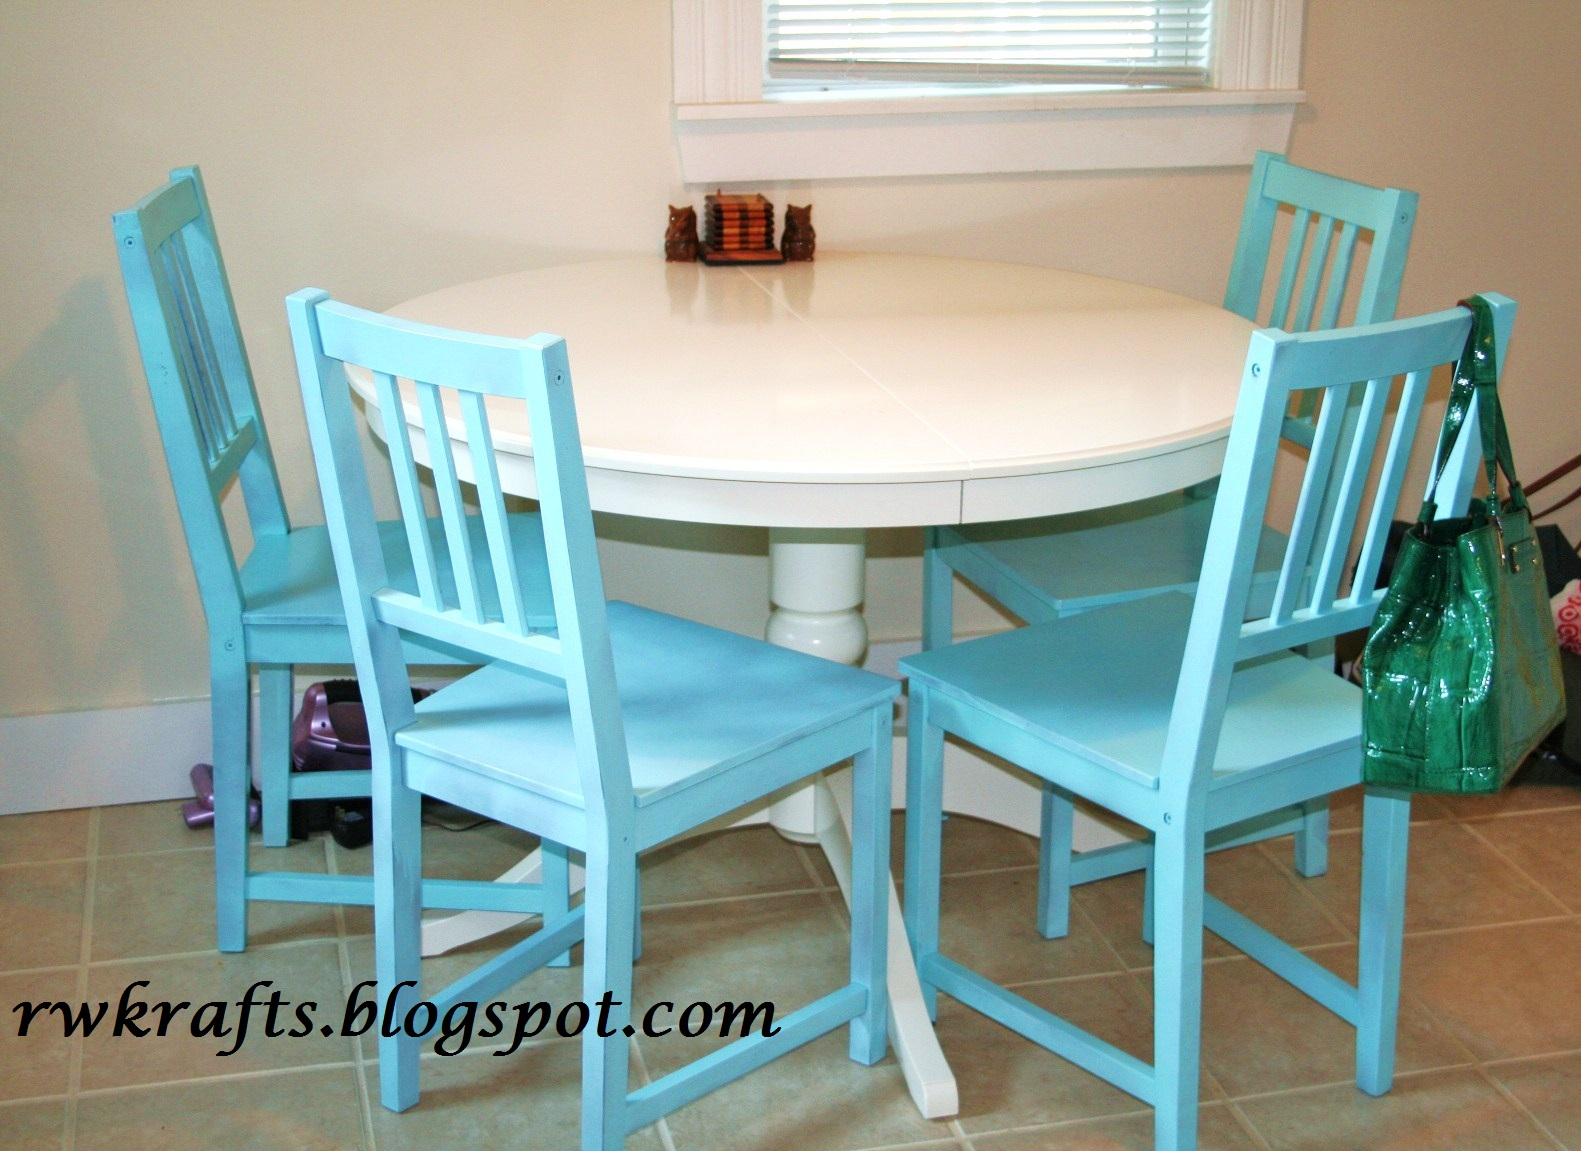 Green Kitchen Chairs Oval Tables Rwkrafts Adding A Splash Of Color To The